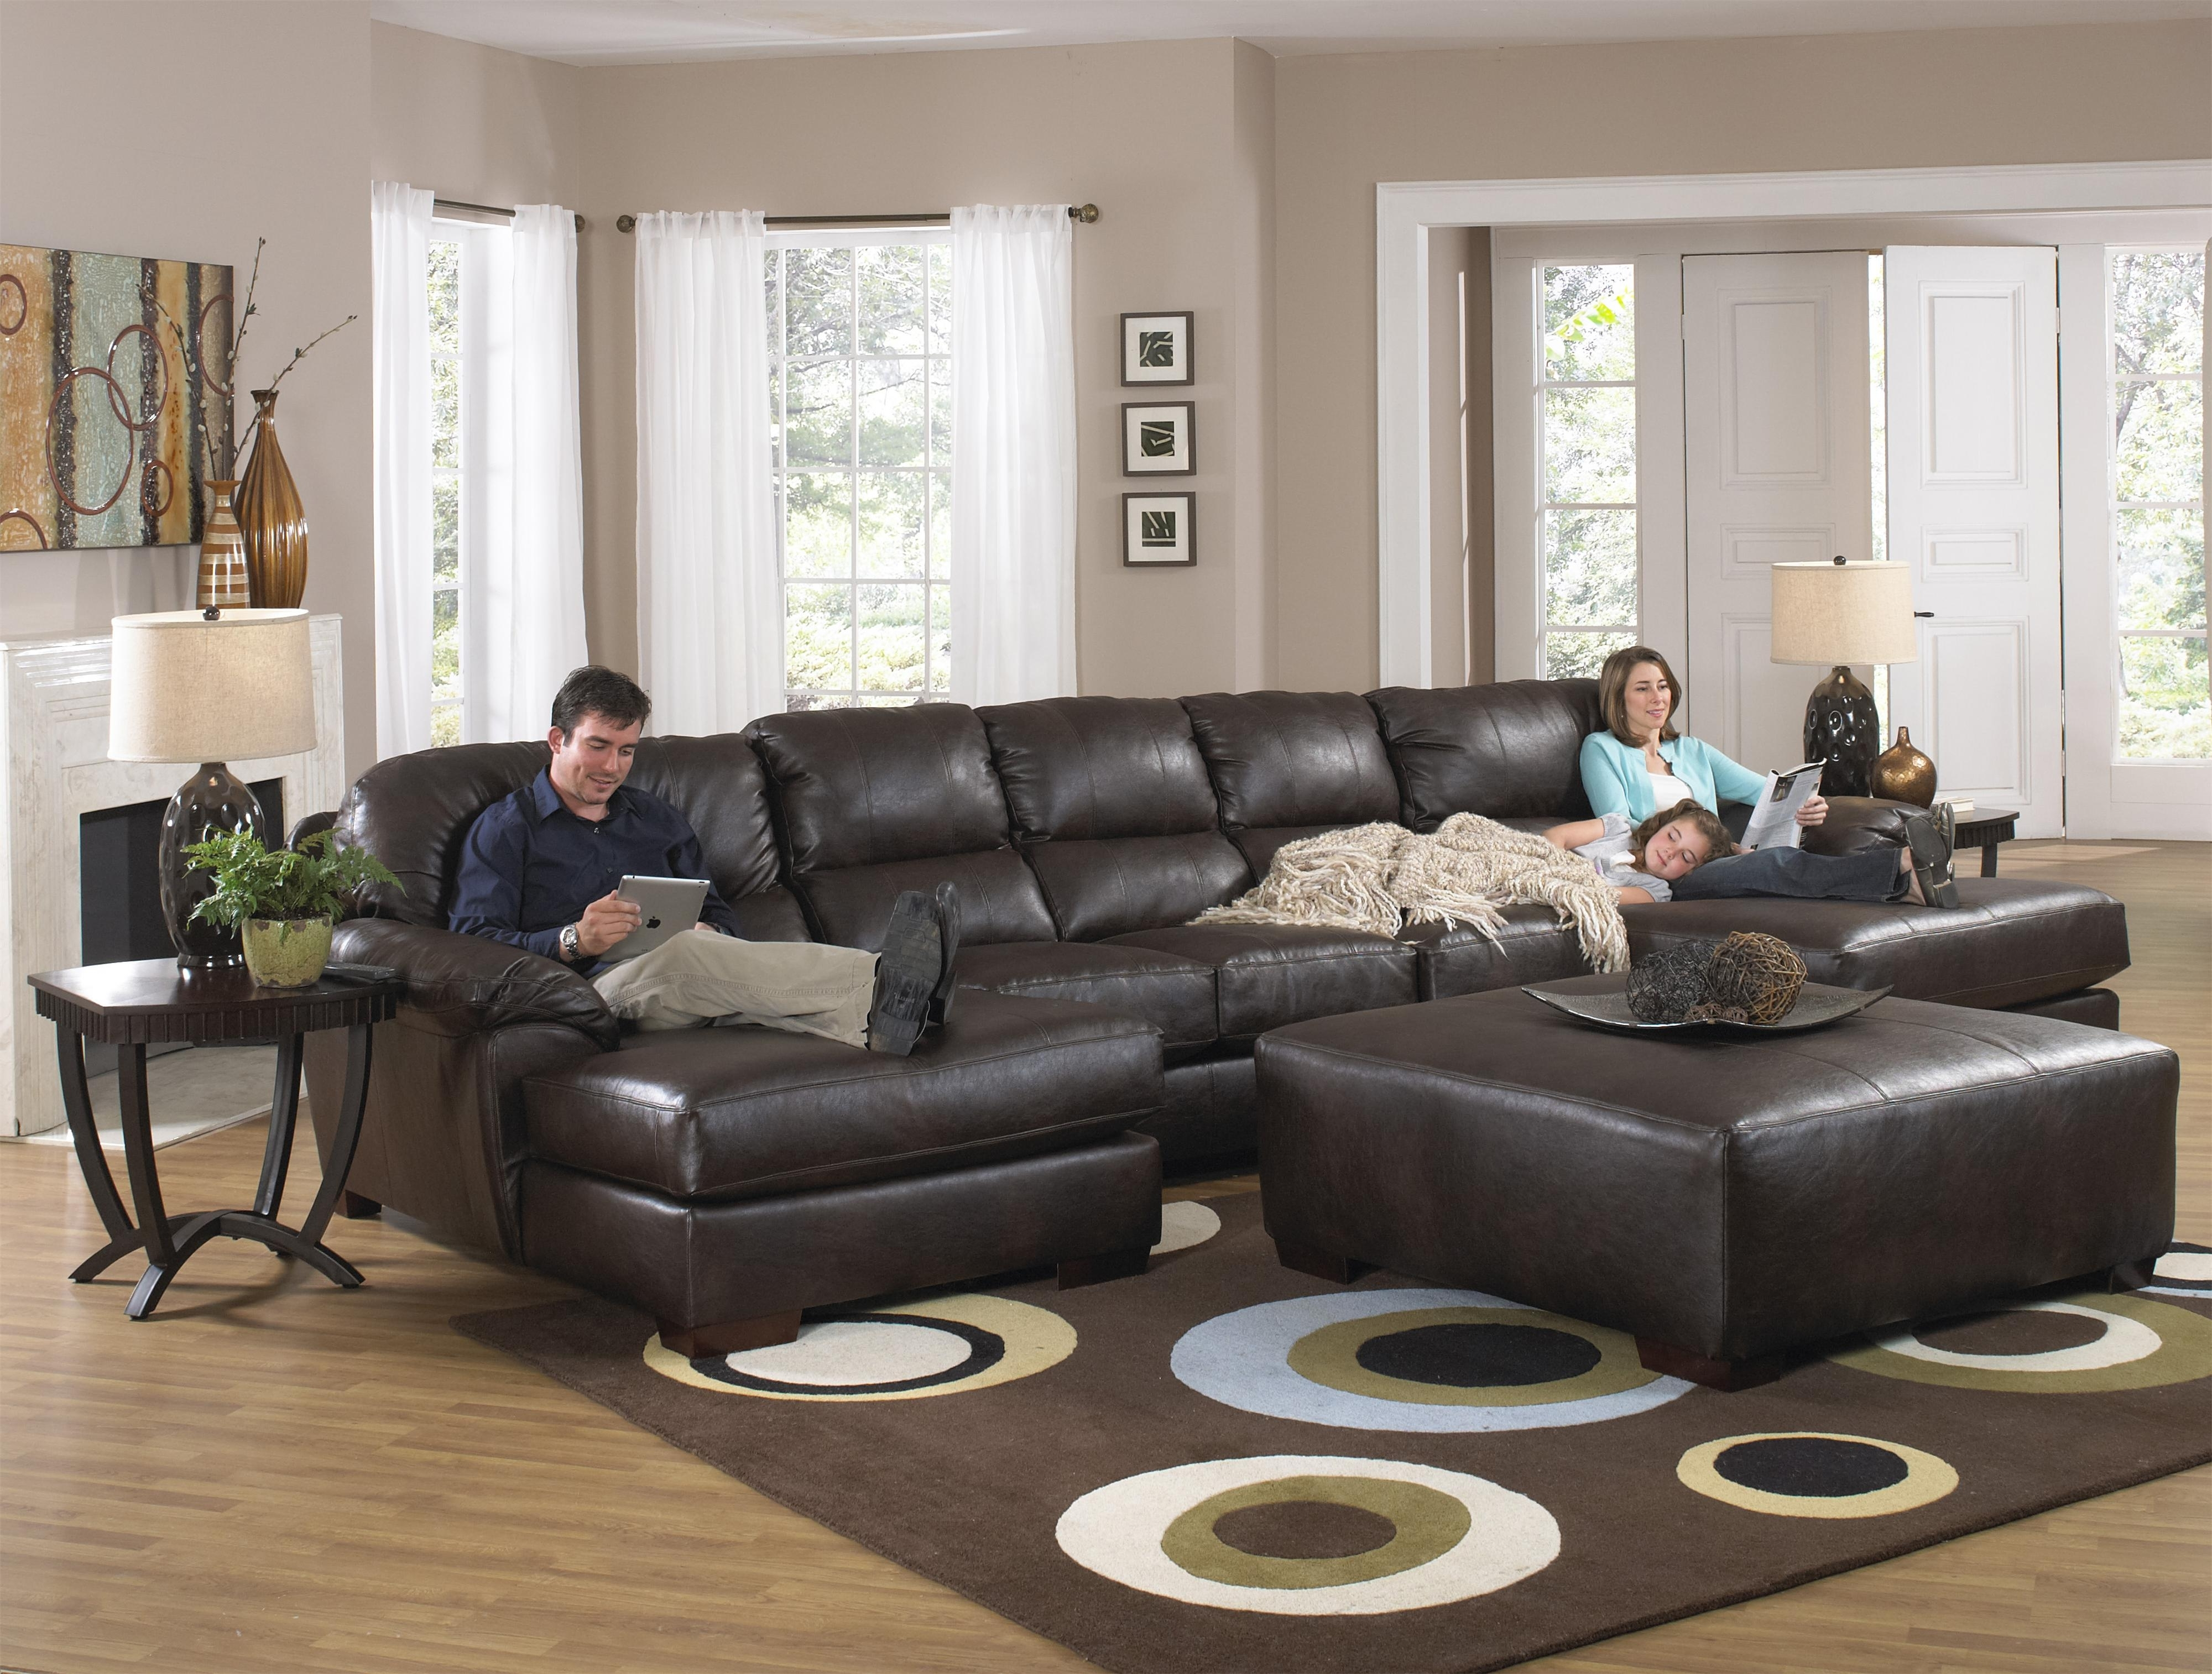 Sofas With Large Ottoman Within Current Sofa : Beautiful Large Sectional Sofa With Chaise L Shaped Cream (View 5 of 15)